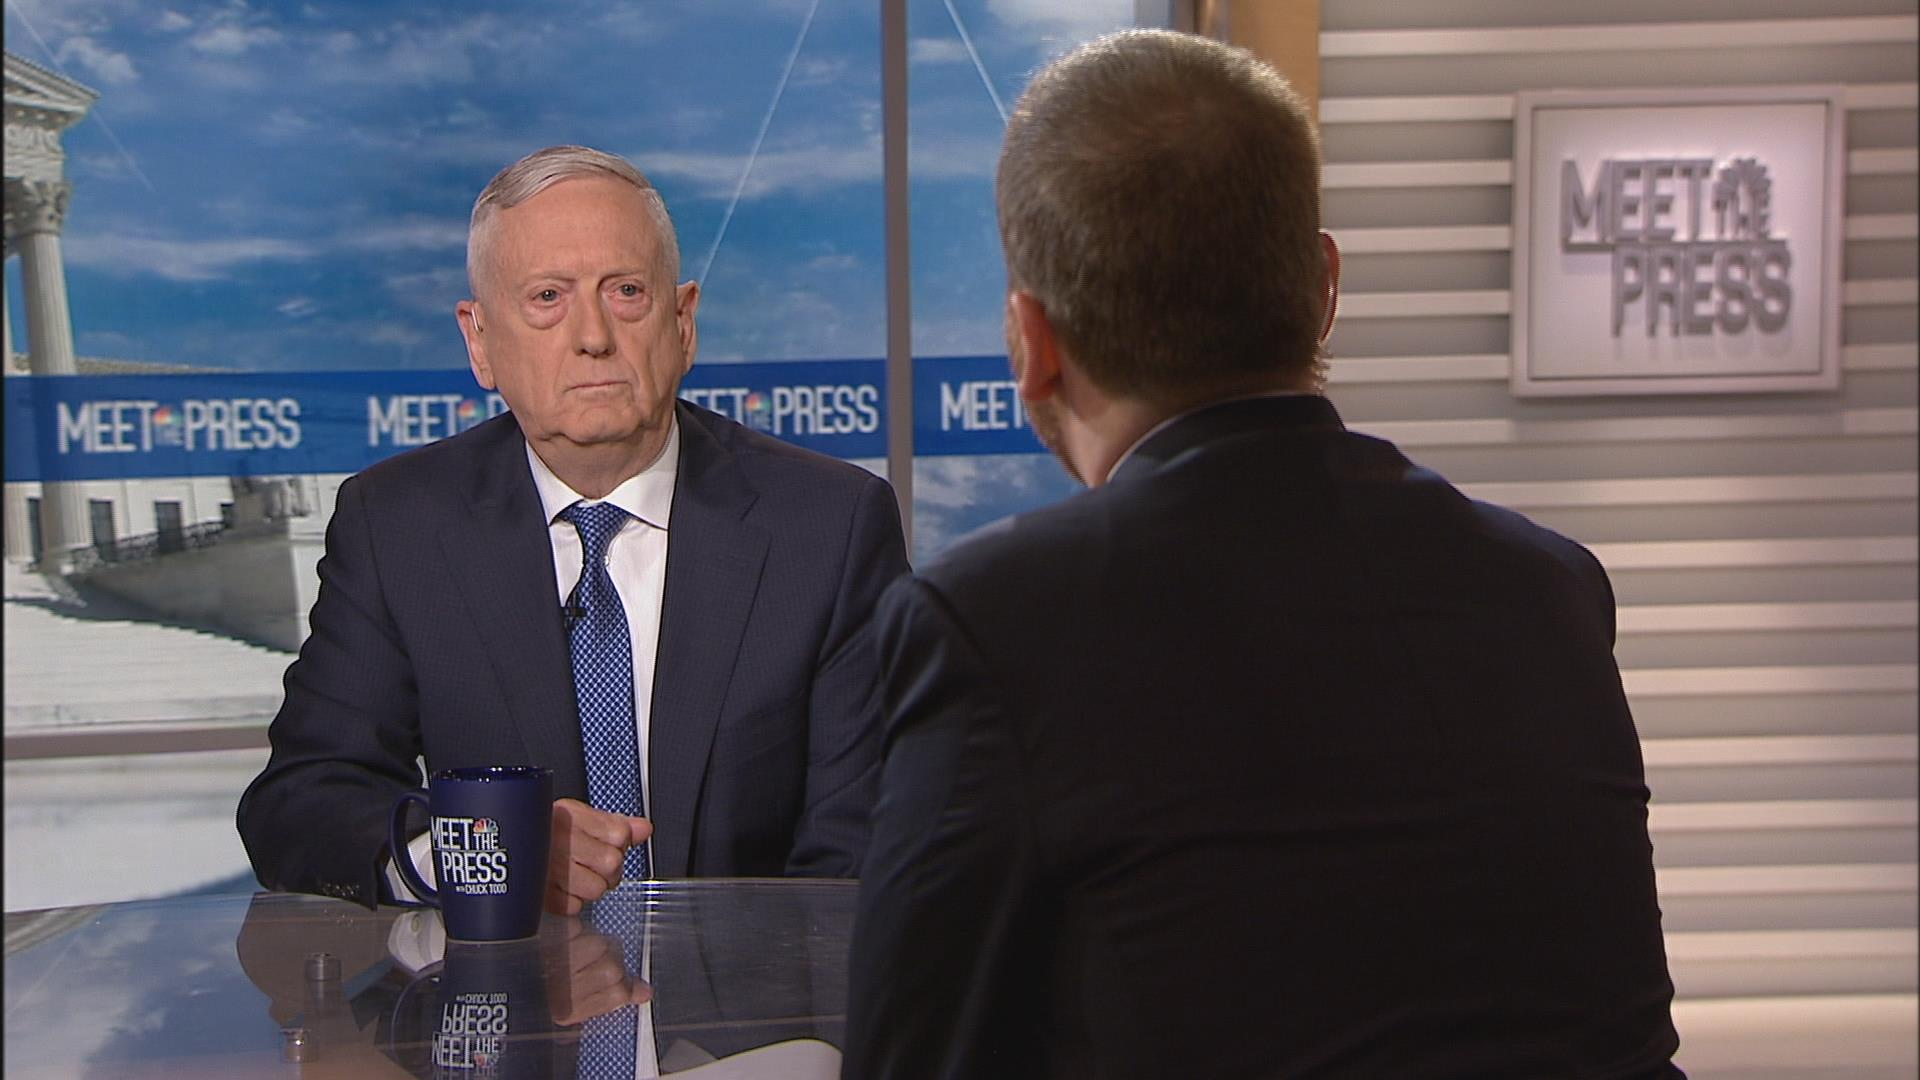 Mattis: 'I don't know what more I could say'